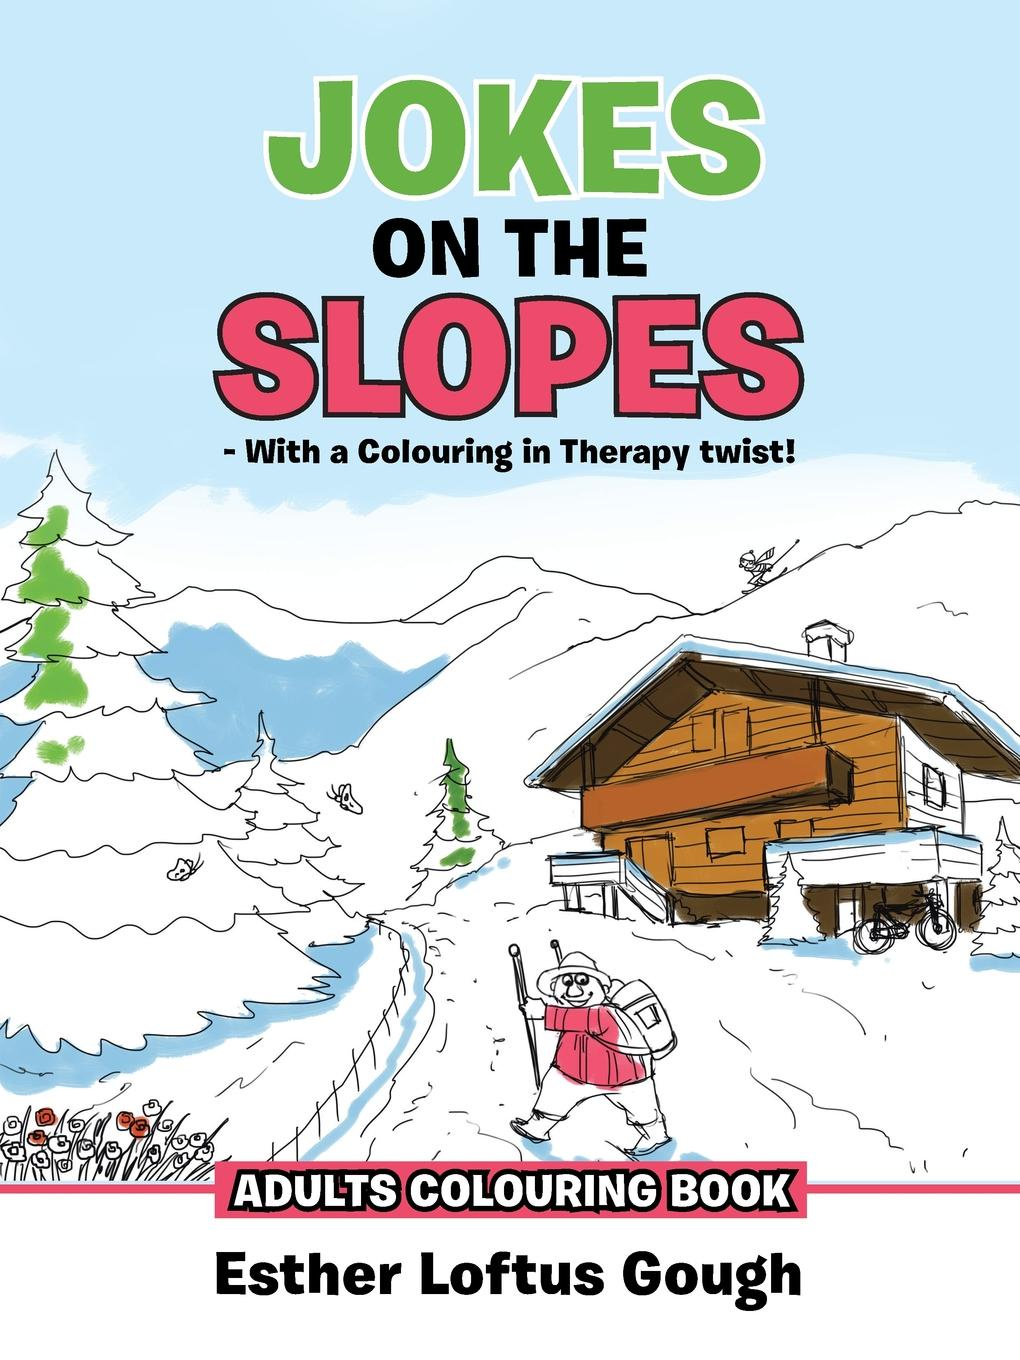 Esther Loftus Gough JOKES ON THE SLOPES - With a Colouring in Therapy twist.. ADULTS COLOURING BOOK